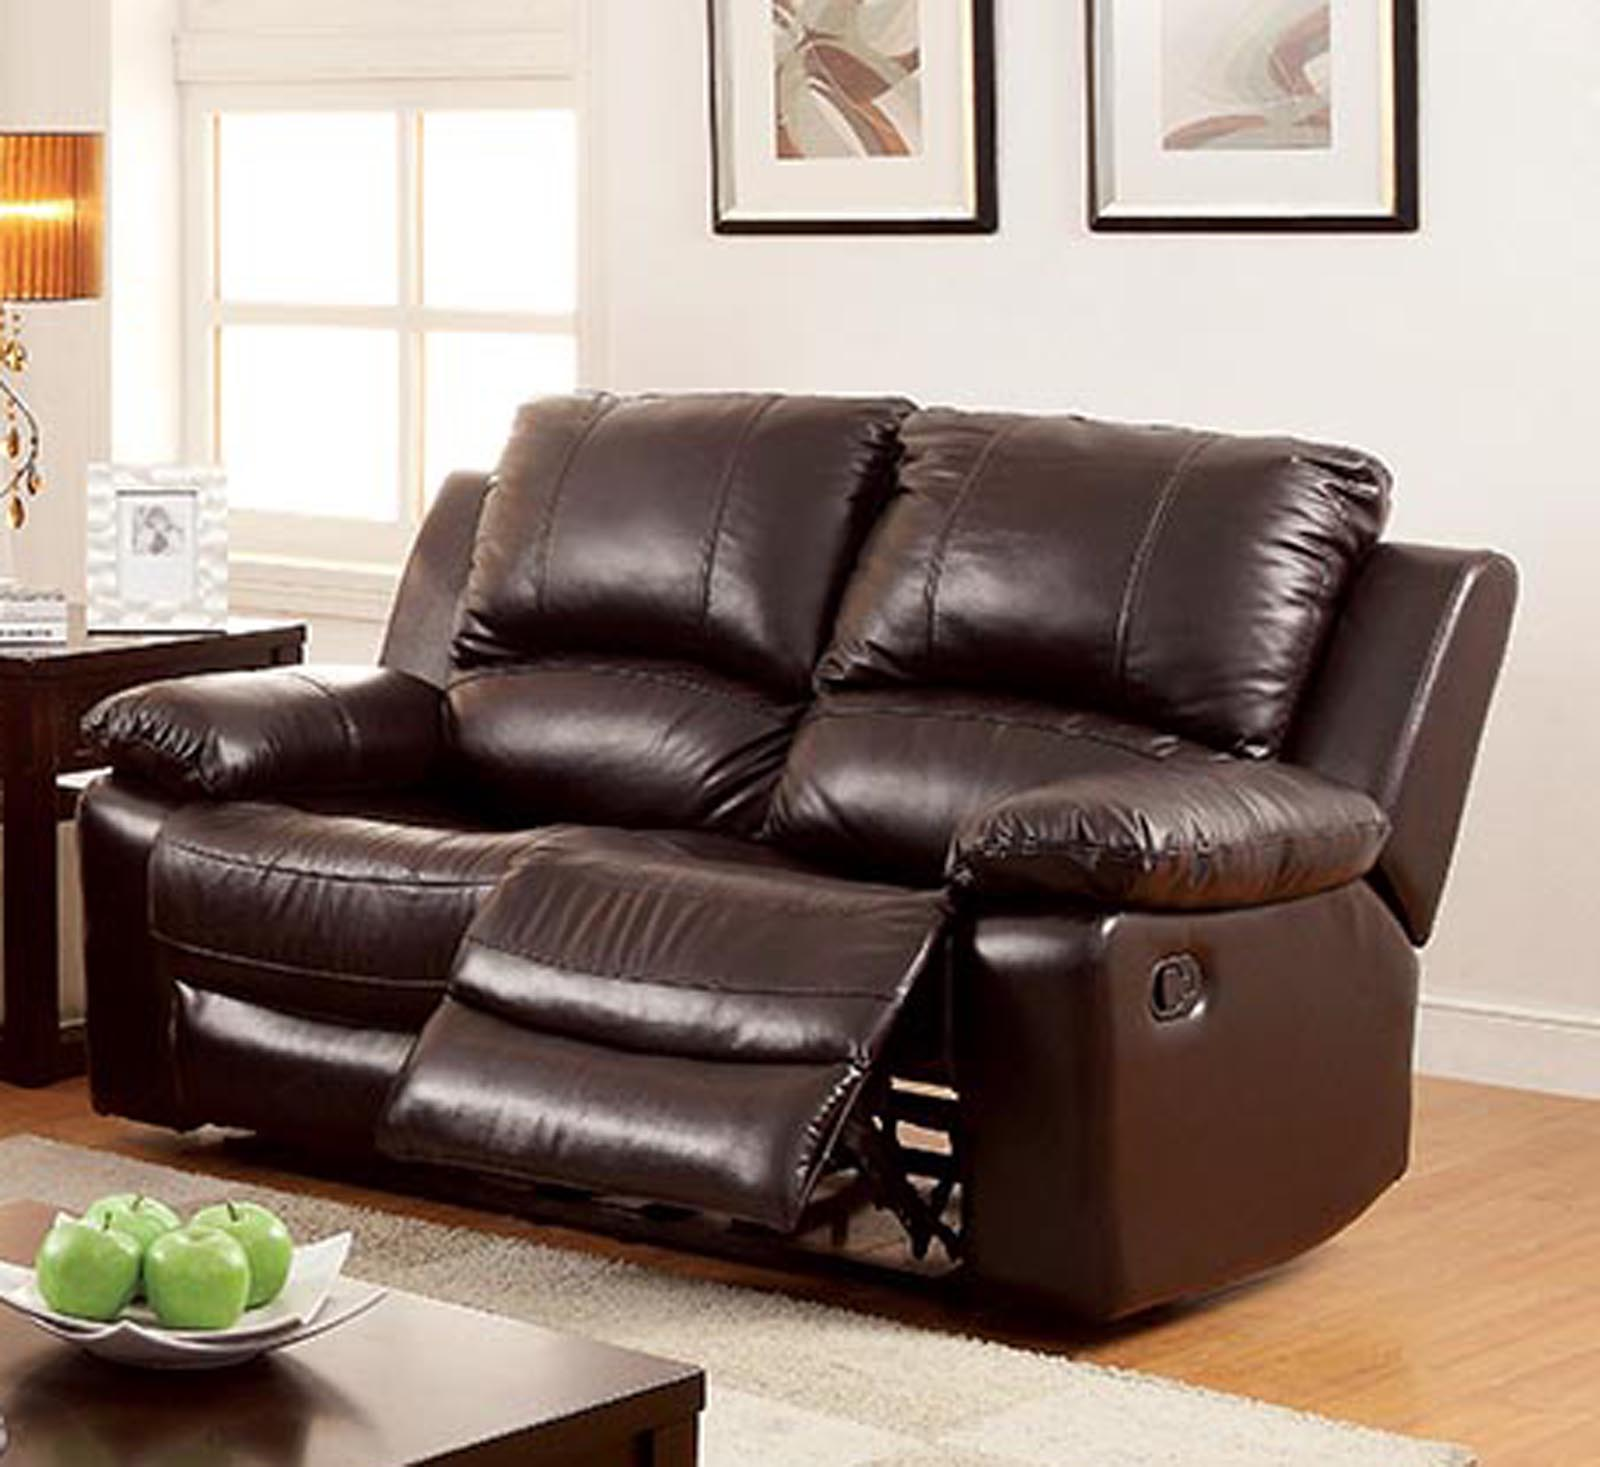 best american made leather sofas low height sofa designs furniture of america dark brown machen top grain